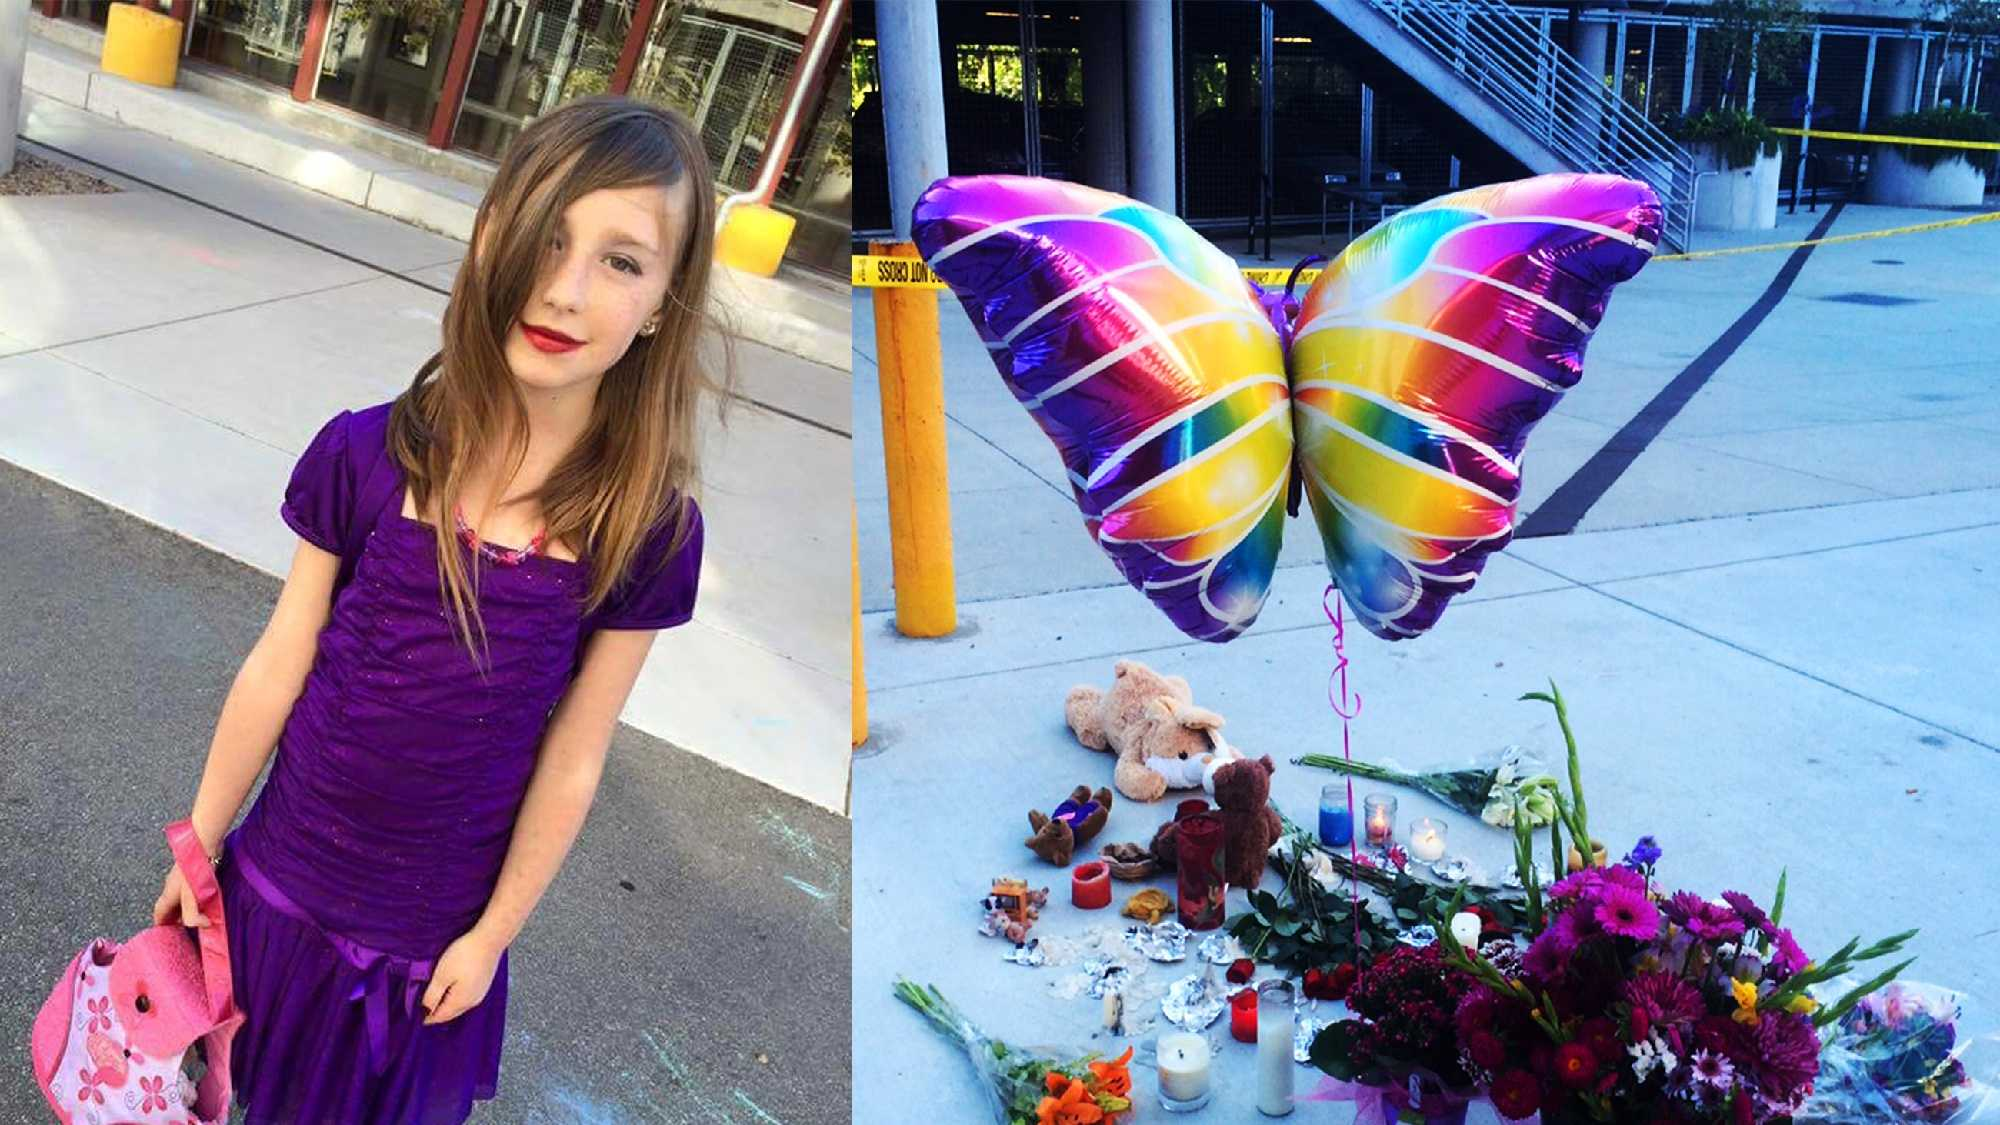 A memorial, right, grew on Tuesday for 8-year-old Madyson Middleton, left.